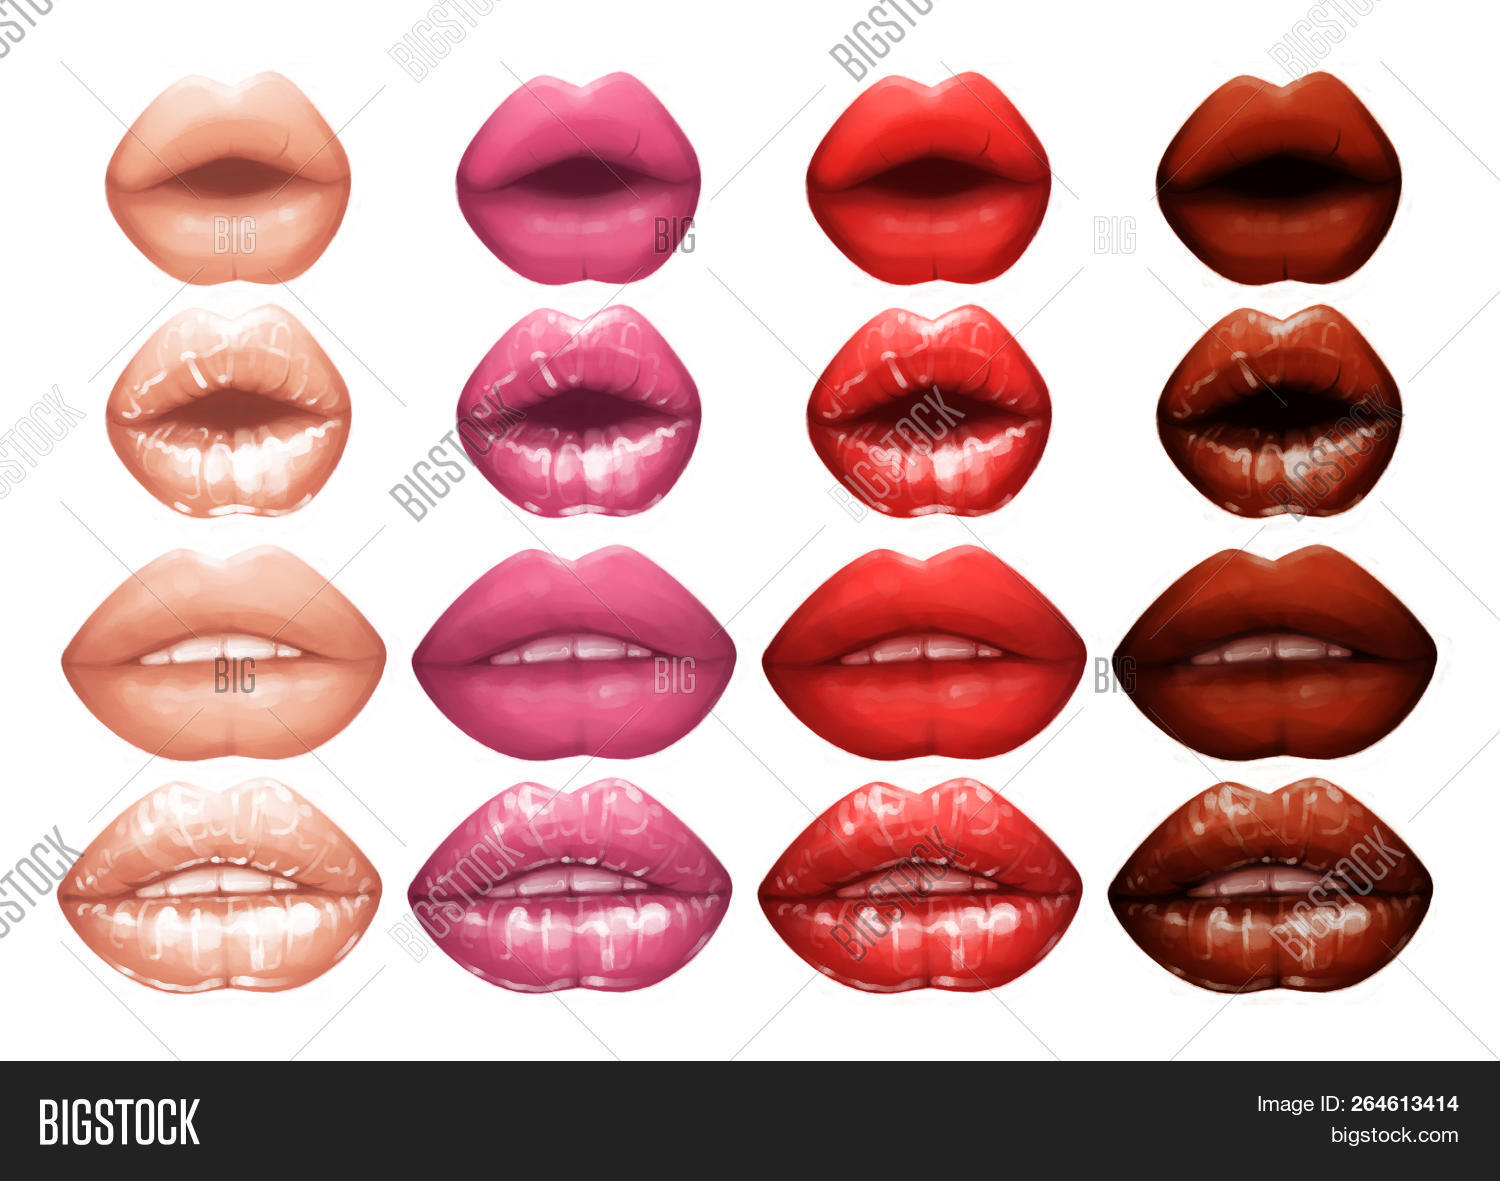 Realistic Lips Painted With Matte And Glossy Pink Lipsticks 264613414 Image Stock Photo